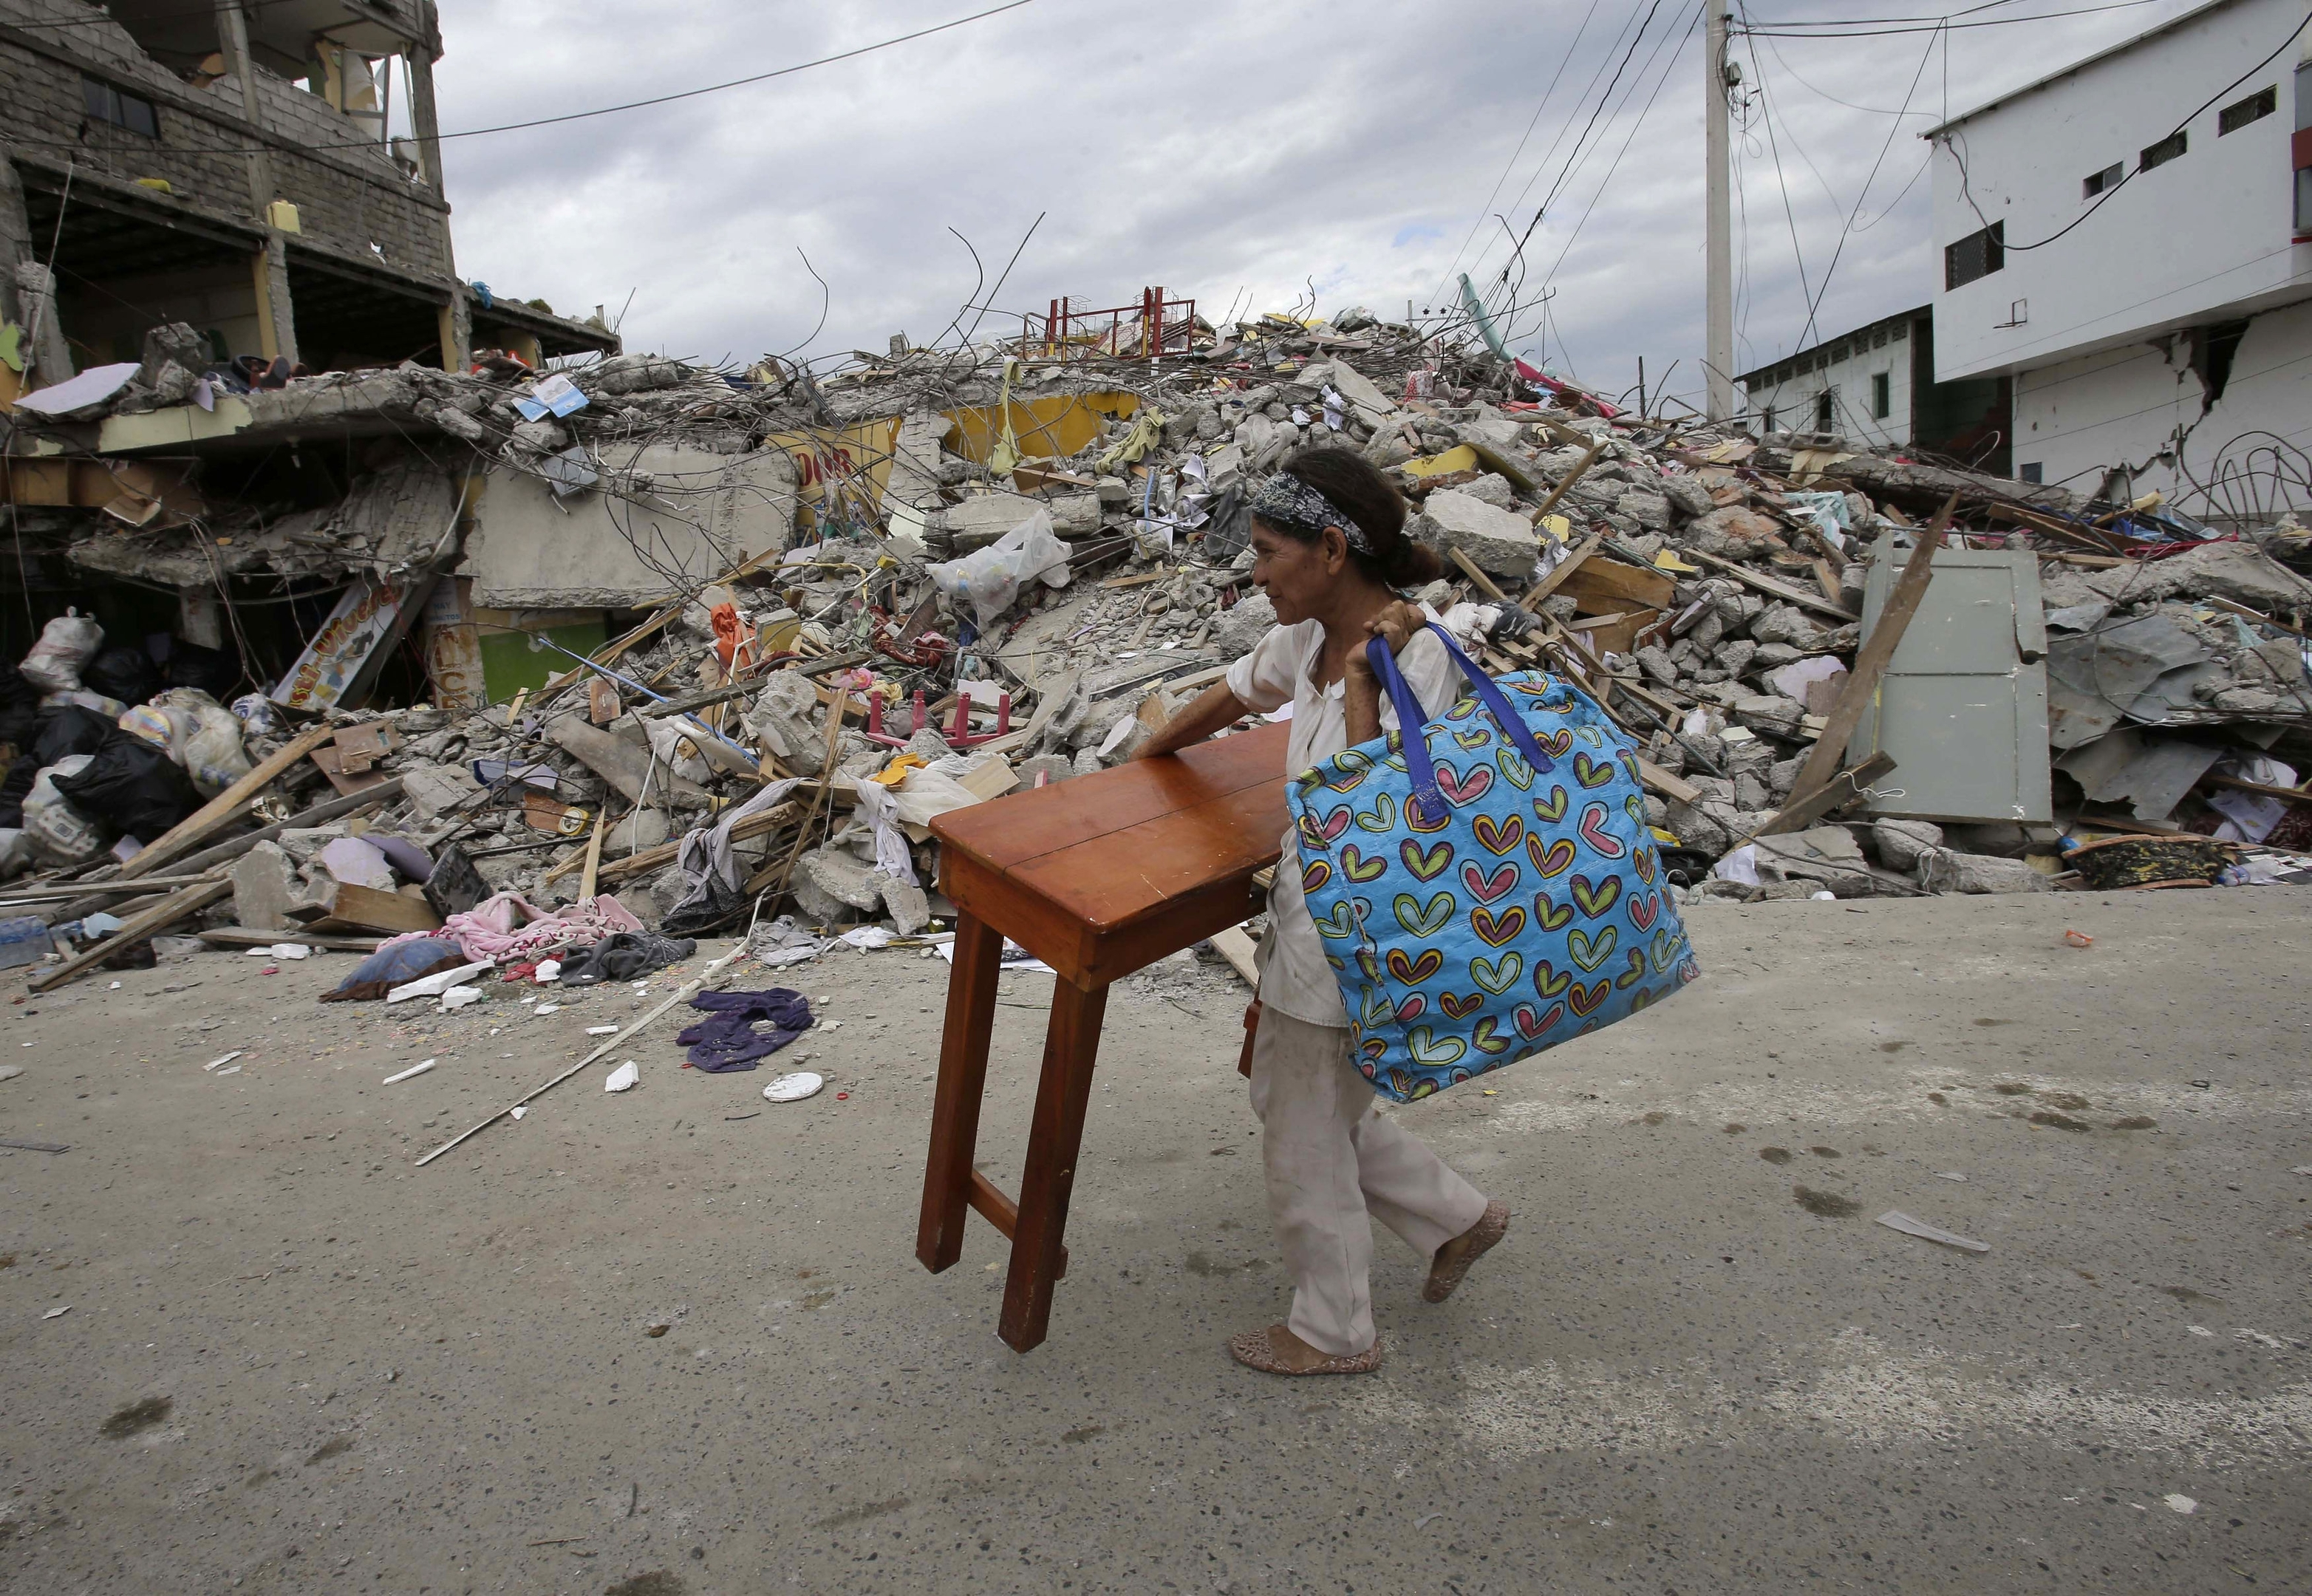 A woman carries a table through the street after an earthquake in Pedernales, Ecuador, Sunday, April 17, 2016. Rescuers pulled survivors from the rubble Sunday after the strongest earthquake to hit Ecuador in decades flattened buildings and buckled highways along its Pacific coast on Saturday. The magnitude-7.8 quake killed hundreds of people.